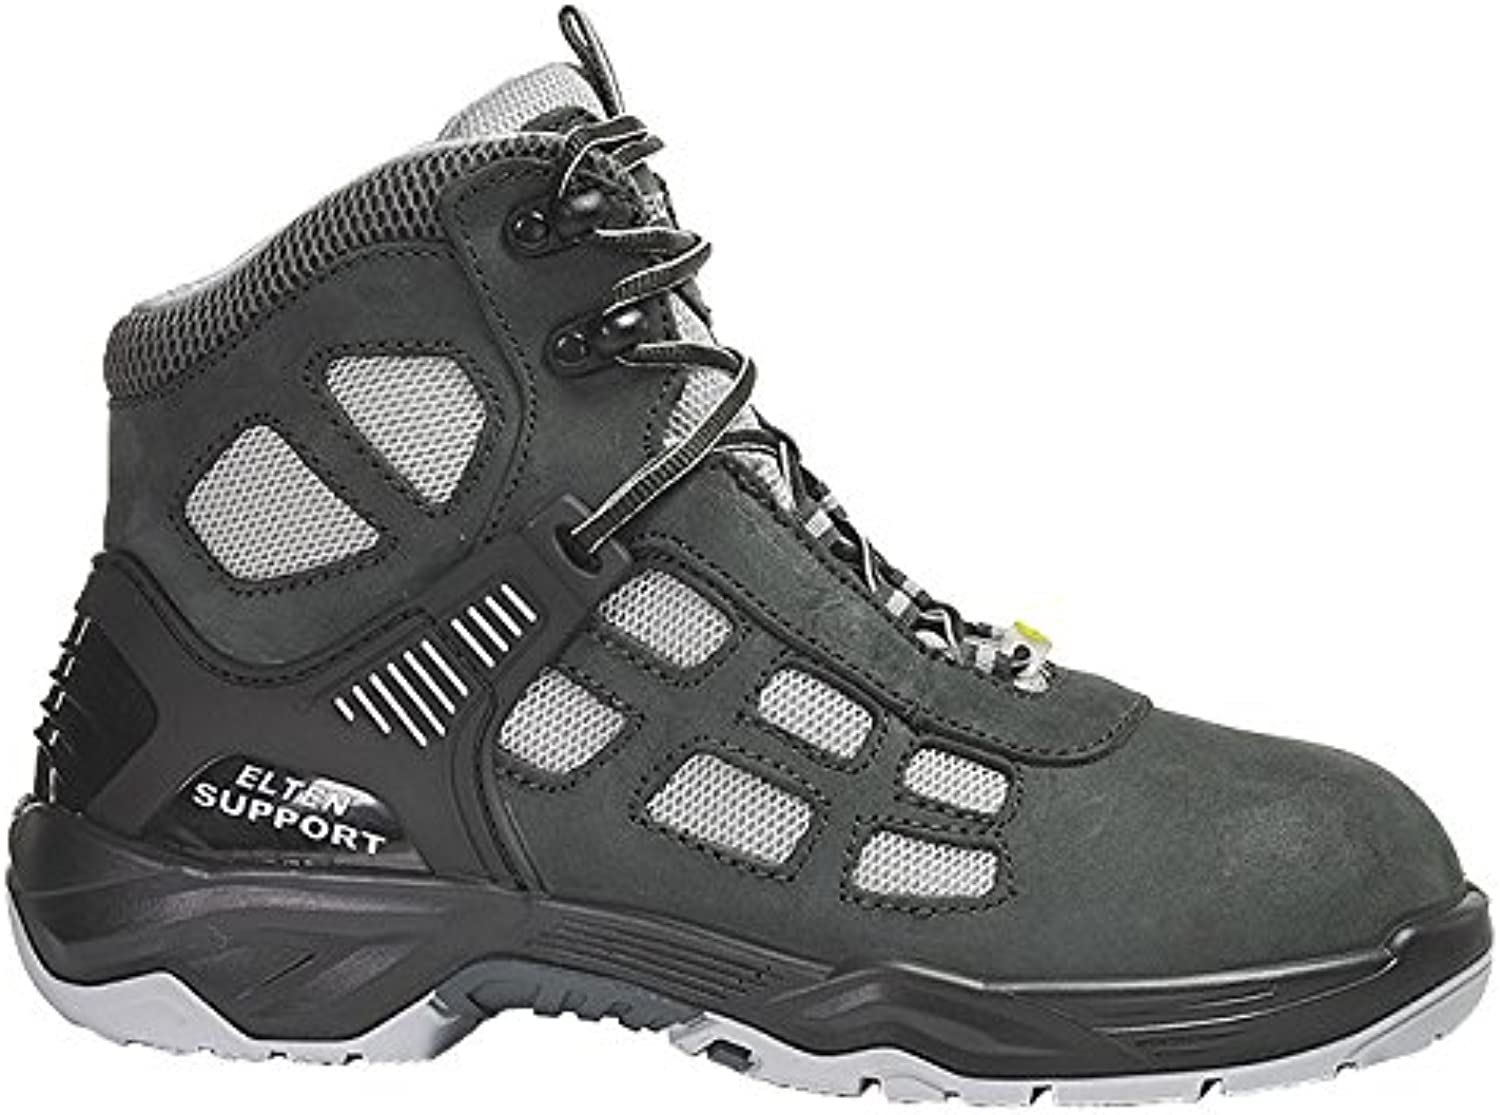 Elten 76742-46 Size 46 ESD S1 Desire Mid  Safety shoes - Multi-Colour